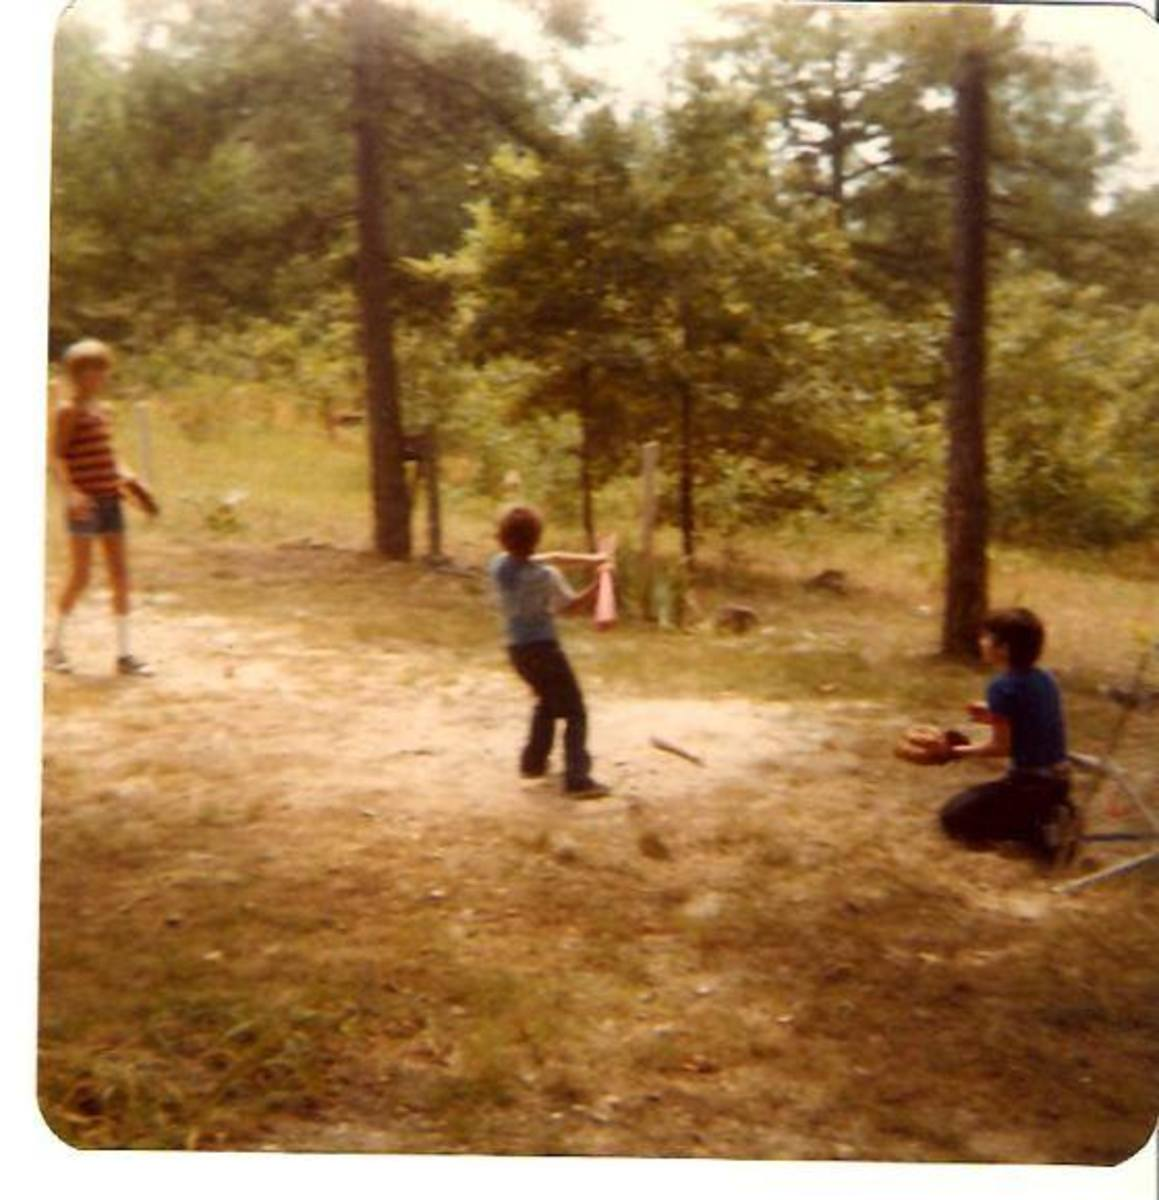 Childhood Memories in Rambling Prose/Poetry--Playing Baseball With My Brothers